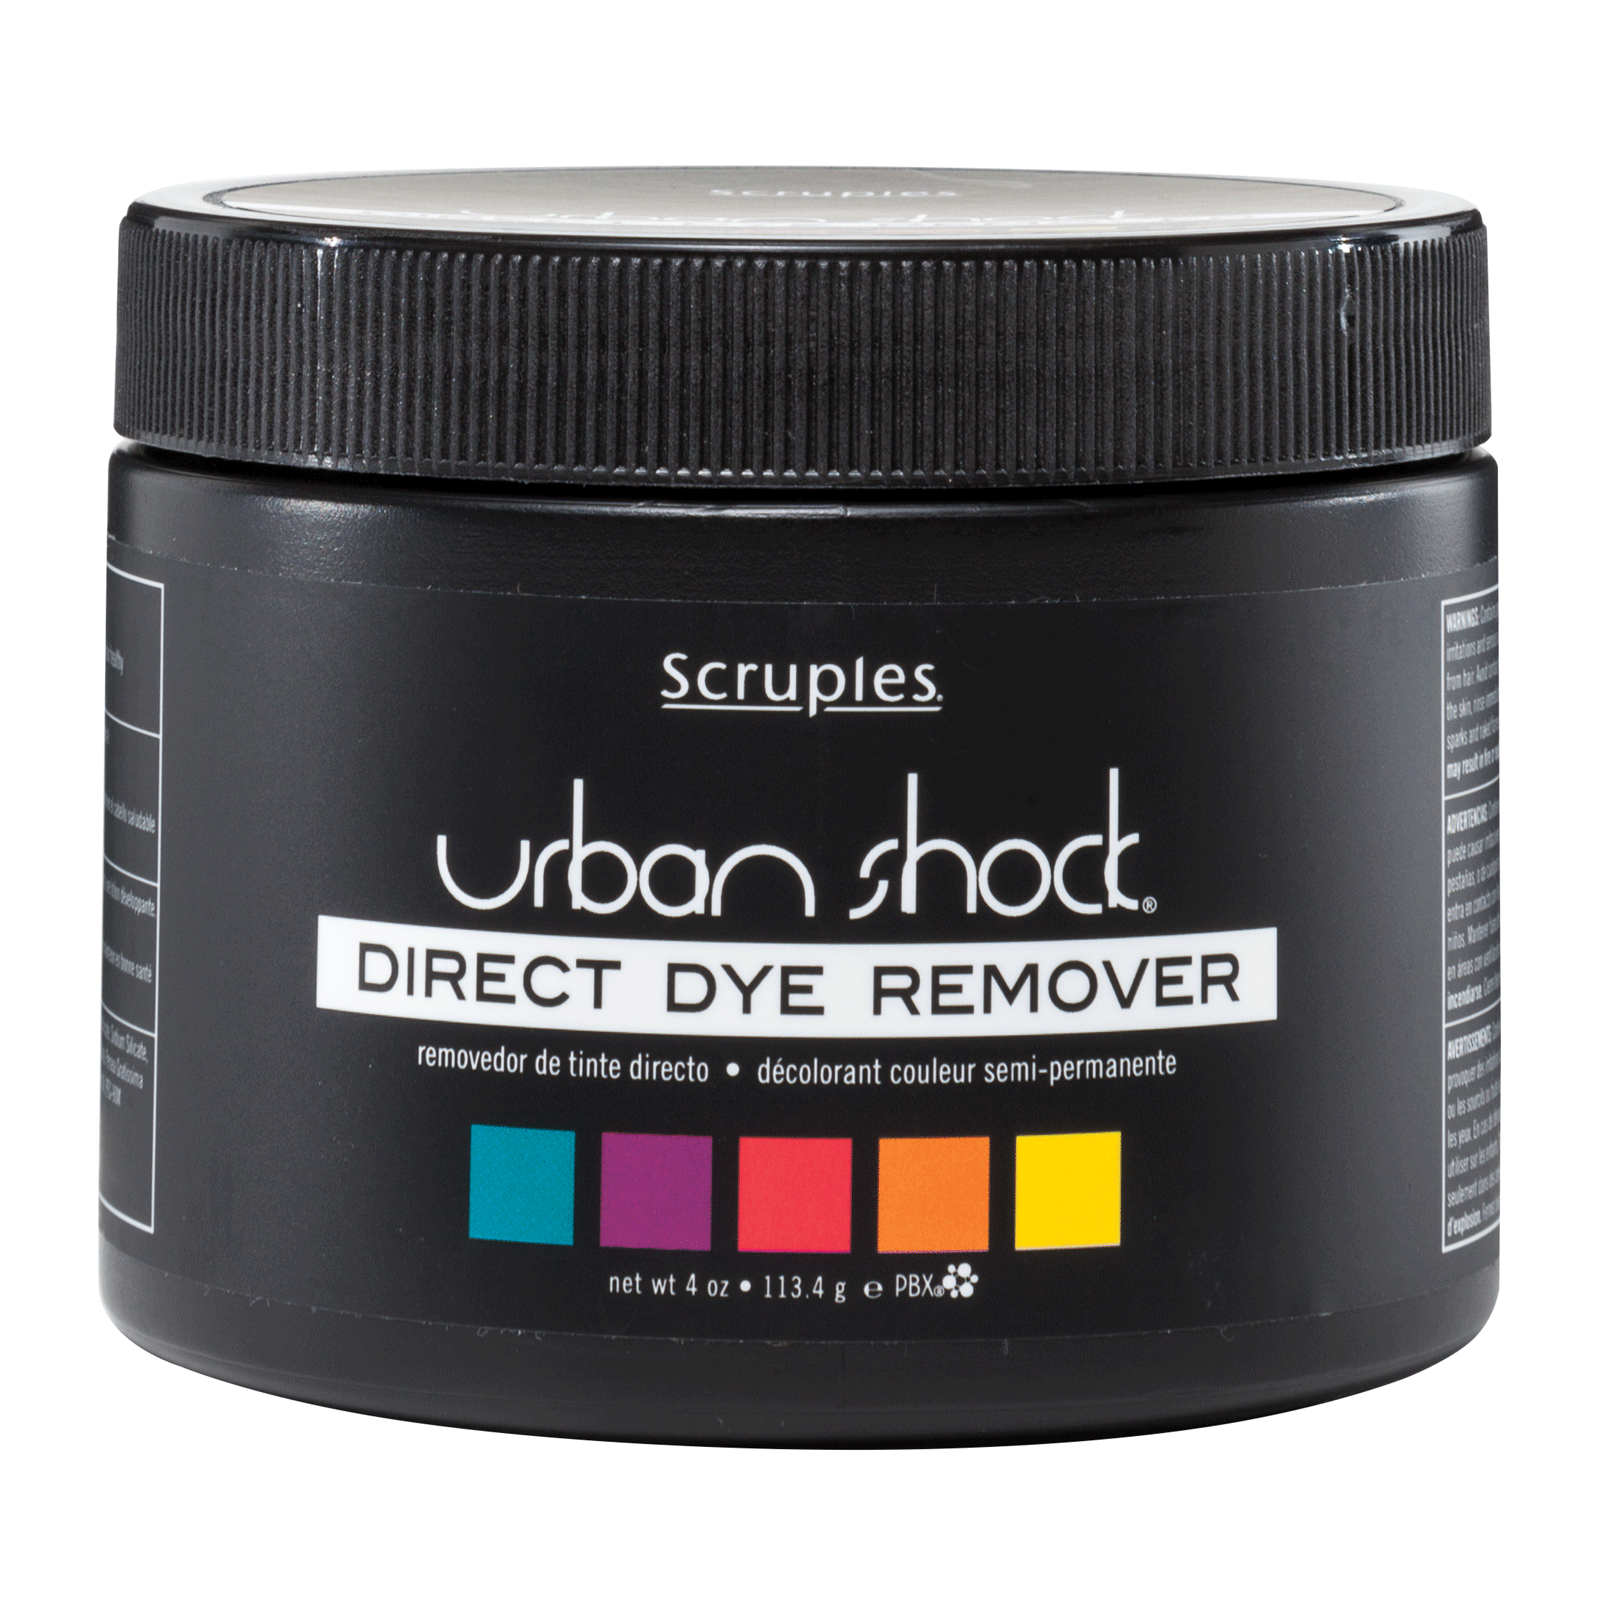 Urban Shock Direct Dye Remover Scruples Cosmoprof